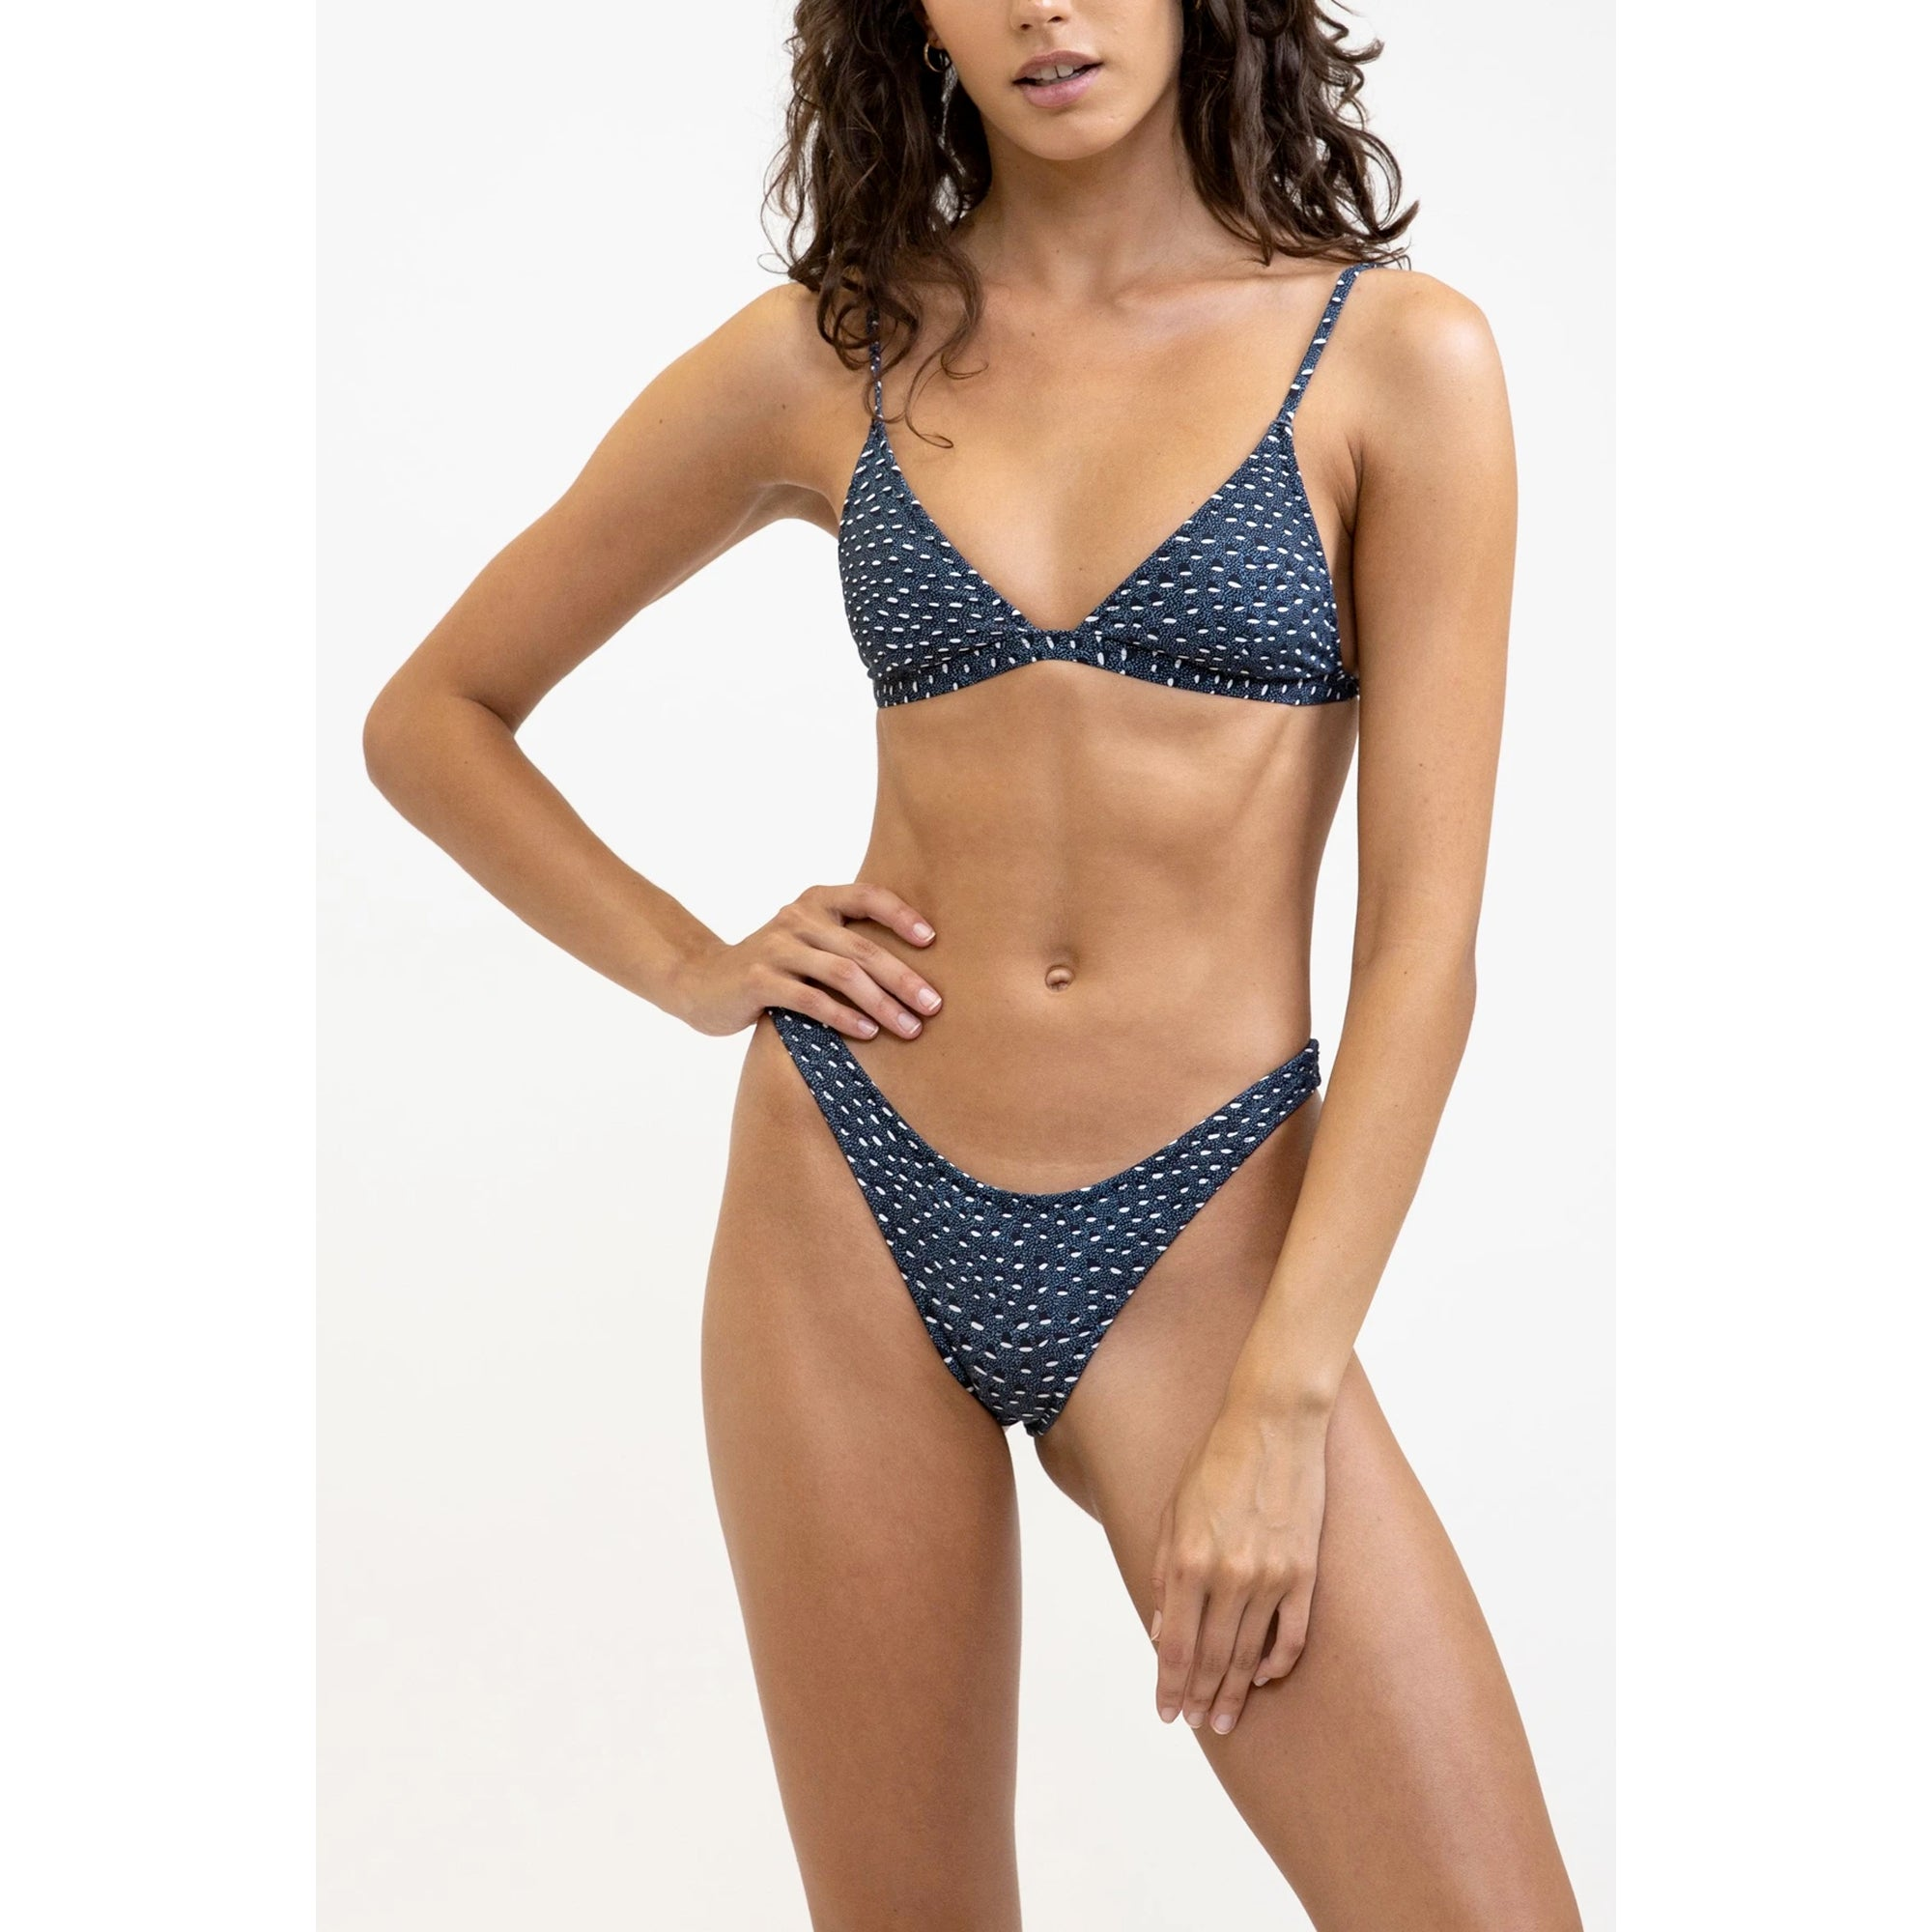 Rhythm Pebble Women's Bralette Bikini Top